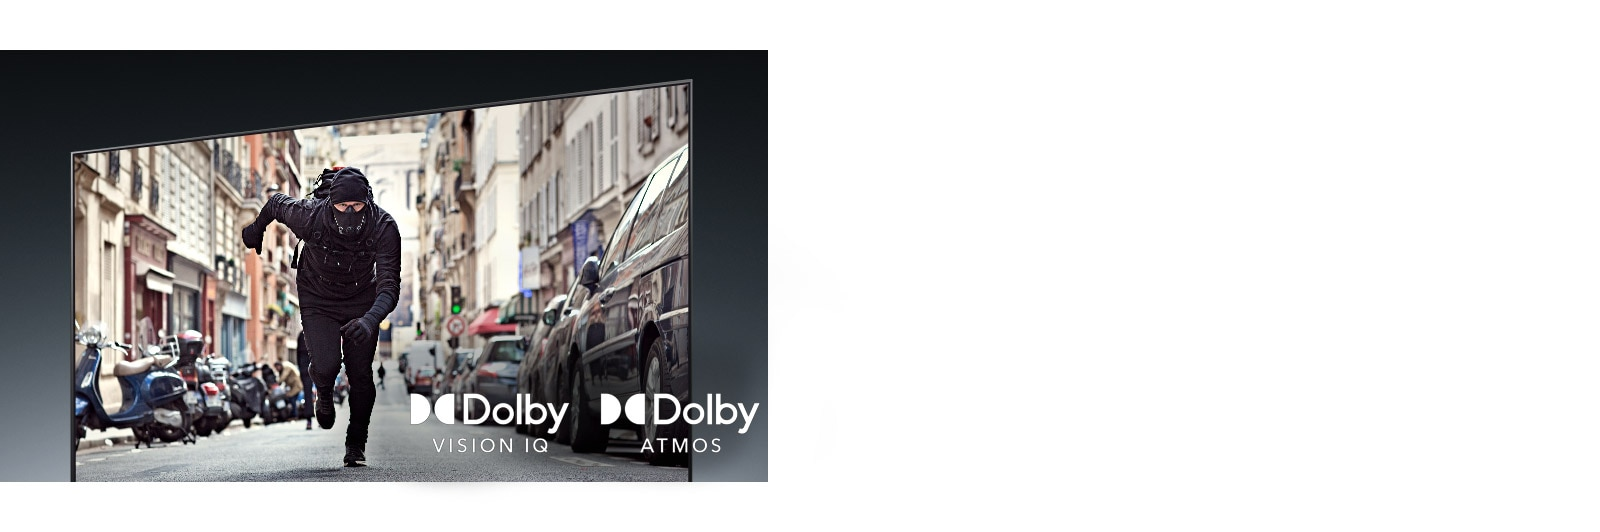 LG OLED65GXPTA Dolby Vision IQ and Atmos